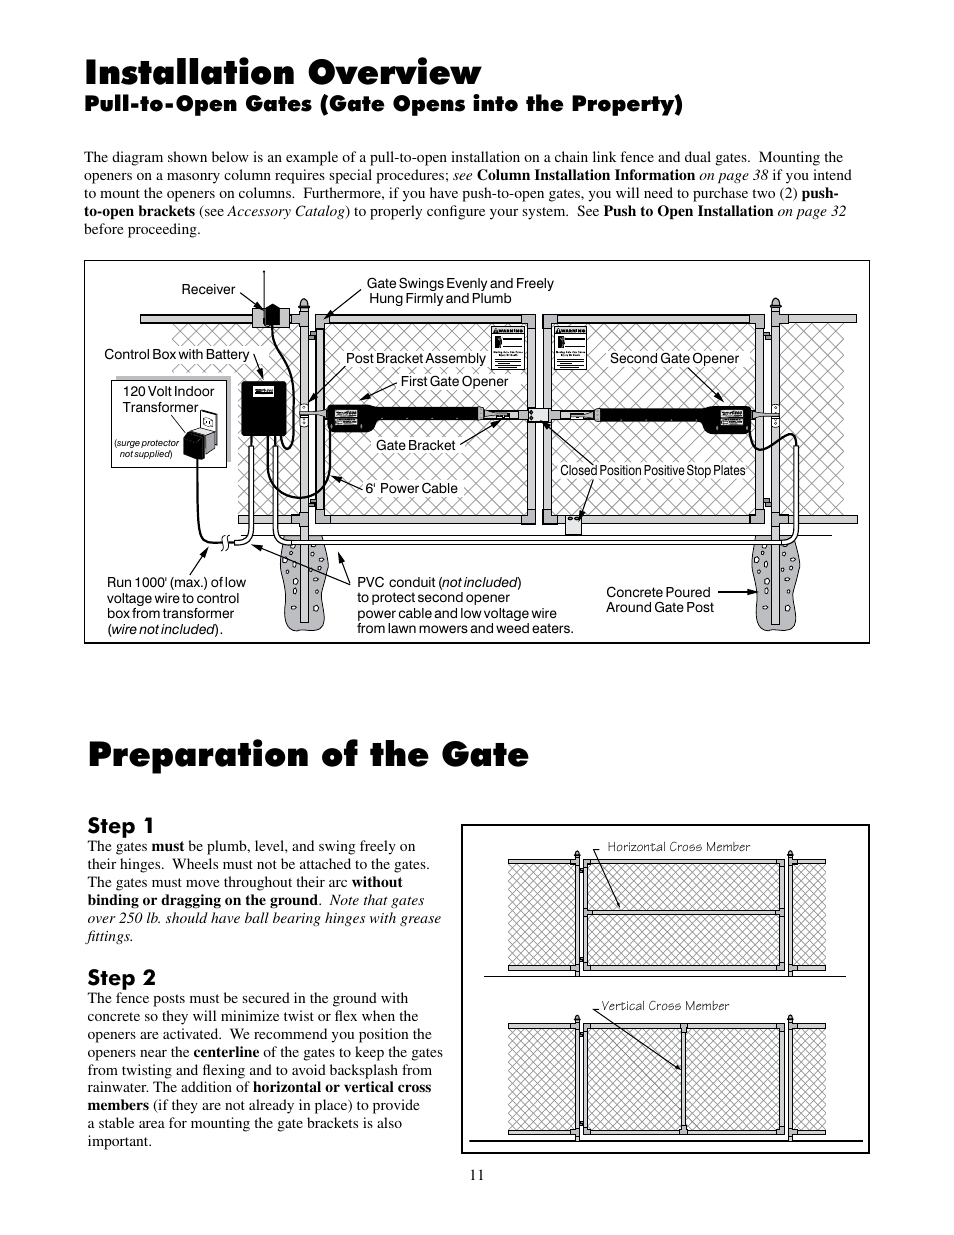 Preparation of the gate, Installation overview, Step 1 | Mighty Mule on simplex wiring diagram, norton wiring diagram, ace wiring diagram, apc wiring diagram, little giant wiring diagram, viking wiring diagram, karcher wiring diagram, general wiring diagram, nortrac wiring diagram, trojan wiring diagram, graco wiring diagram, cooper wiring diagram, generic wiring diagram, hobart wiring diagram, apache wiring diagram, atlas wiring diagram, rockwell wiring diagram, kodiak wiring diagram, mi-t-m wiring diagram, bulldog wiring diagram,